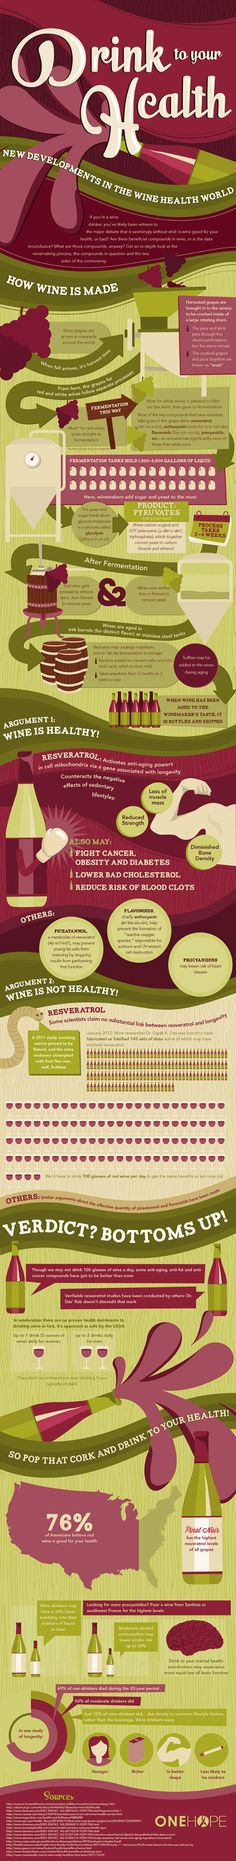 Drink to Your Health! – Wine Infographic